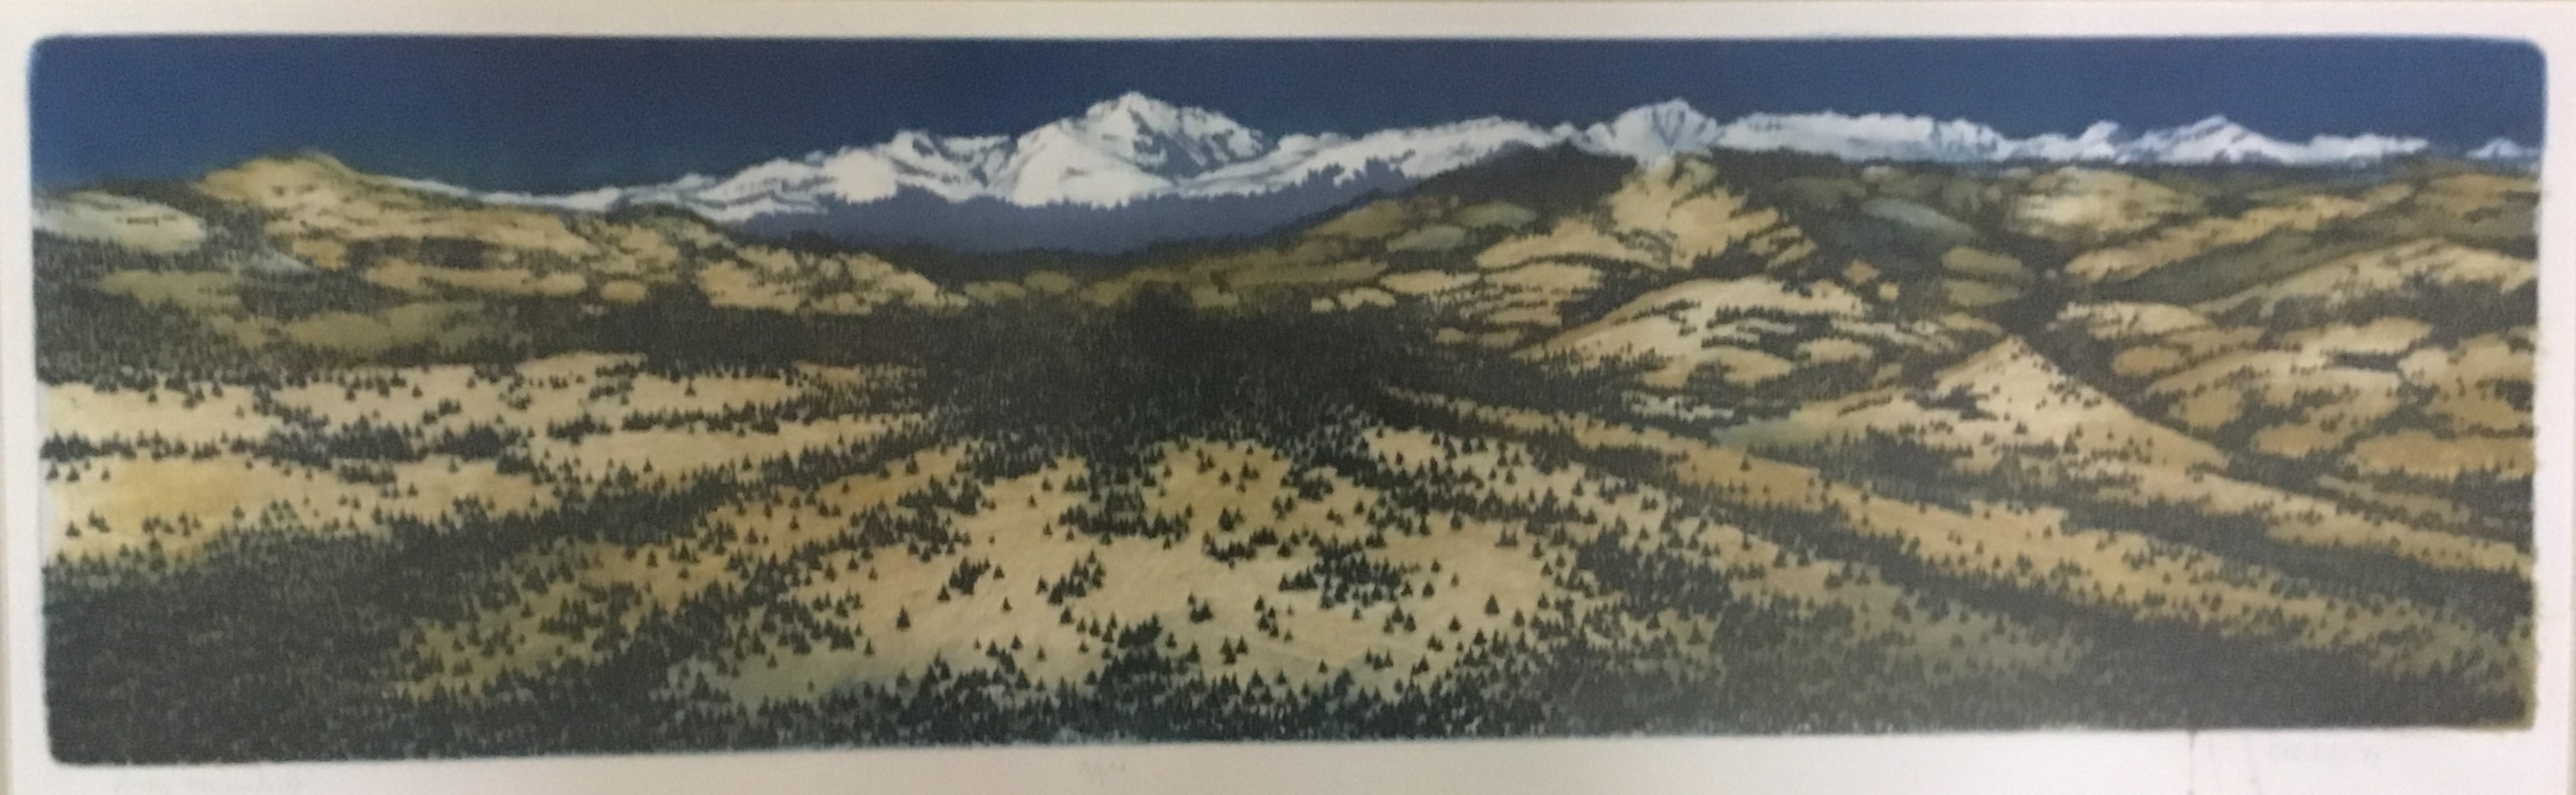 Rocky Mtn Landscape artwork by Tim Diffenderfer - art listed for sale on Artplode